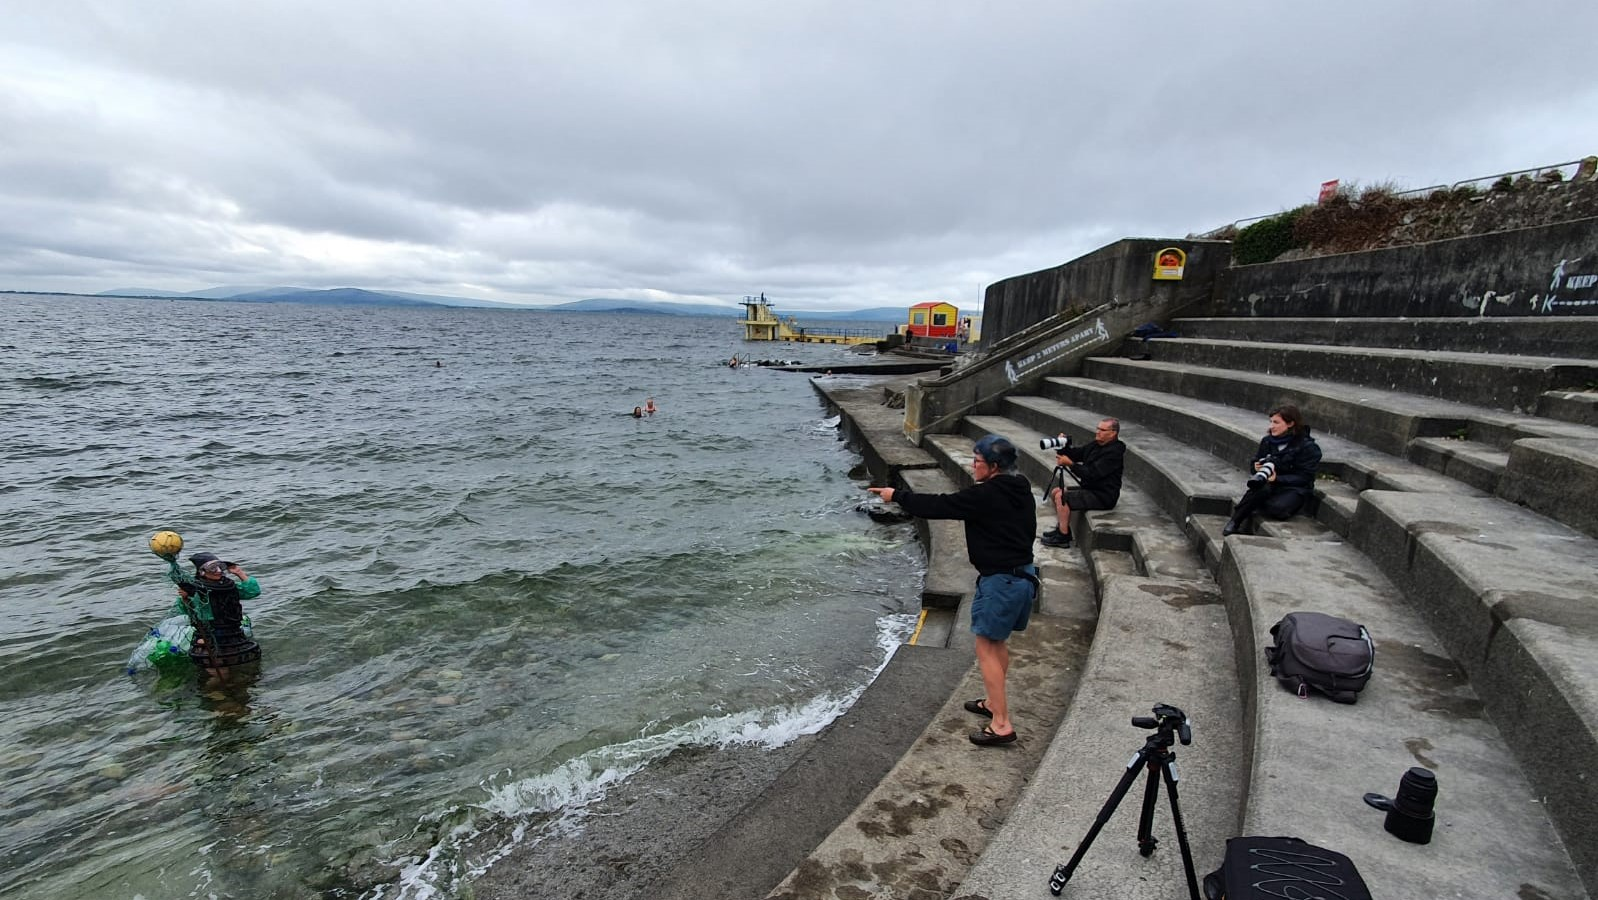 http://www.hopeitrains.ie/images/drowned_galway_shoot_16x9.jpg